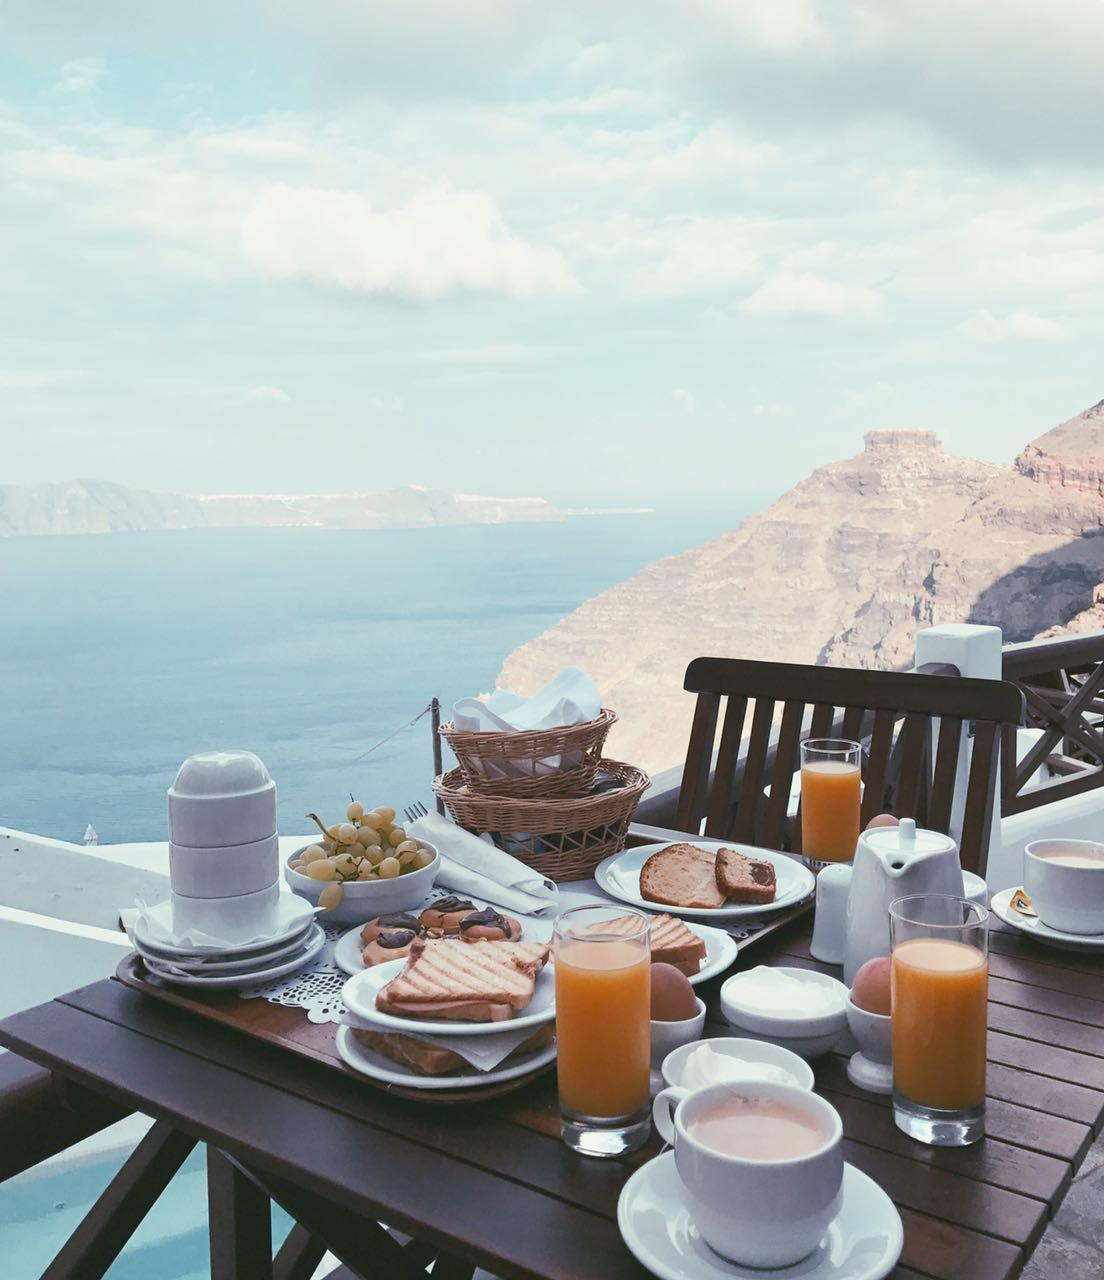 Breakfast with a magic view